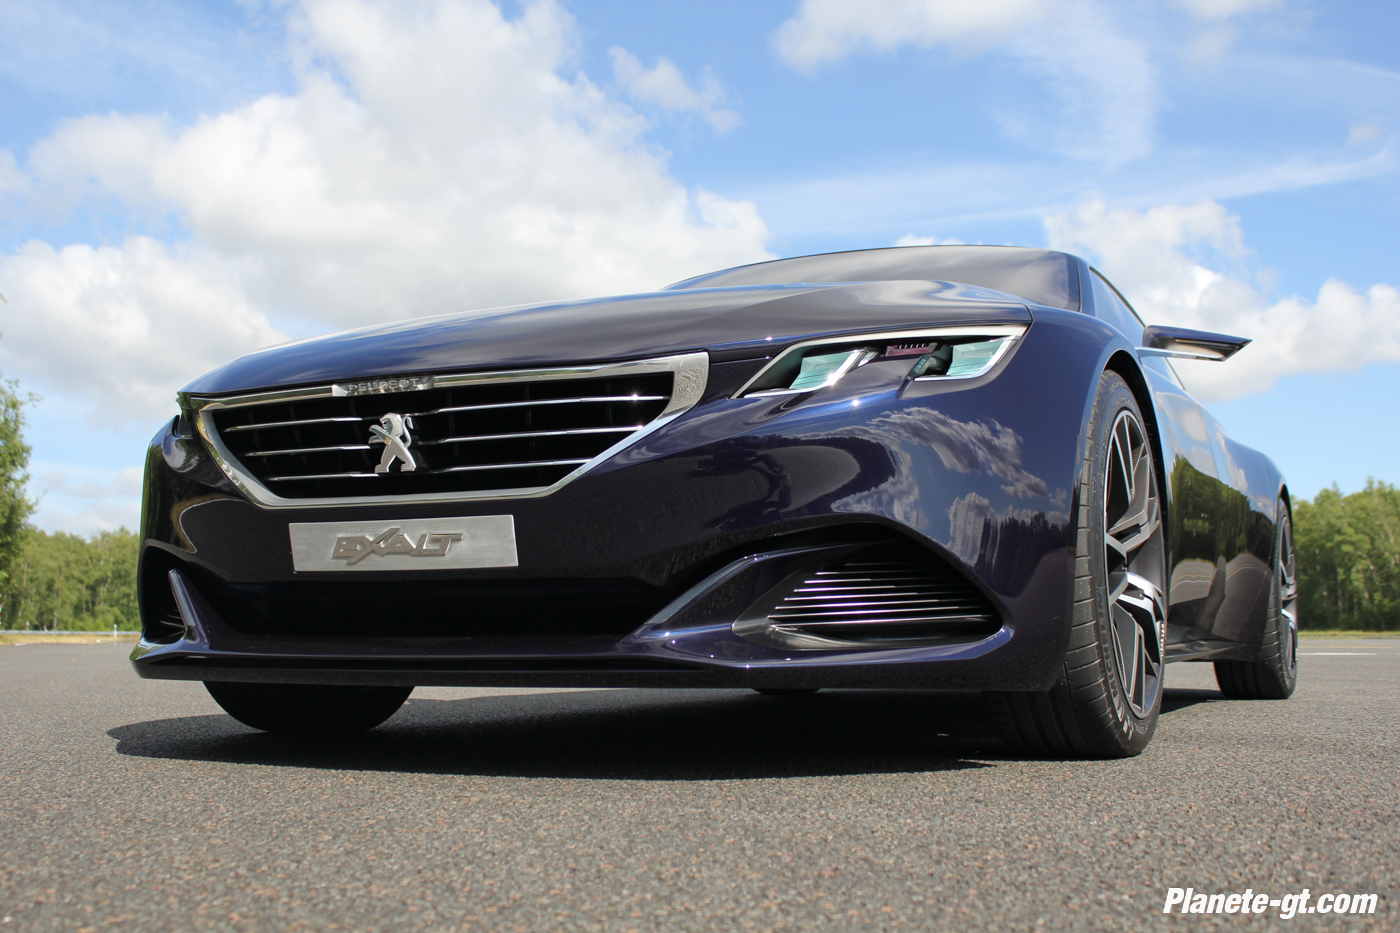 Peugeot-exalt-concept-presentation-video-utac-ceram-photos (9)